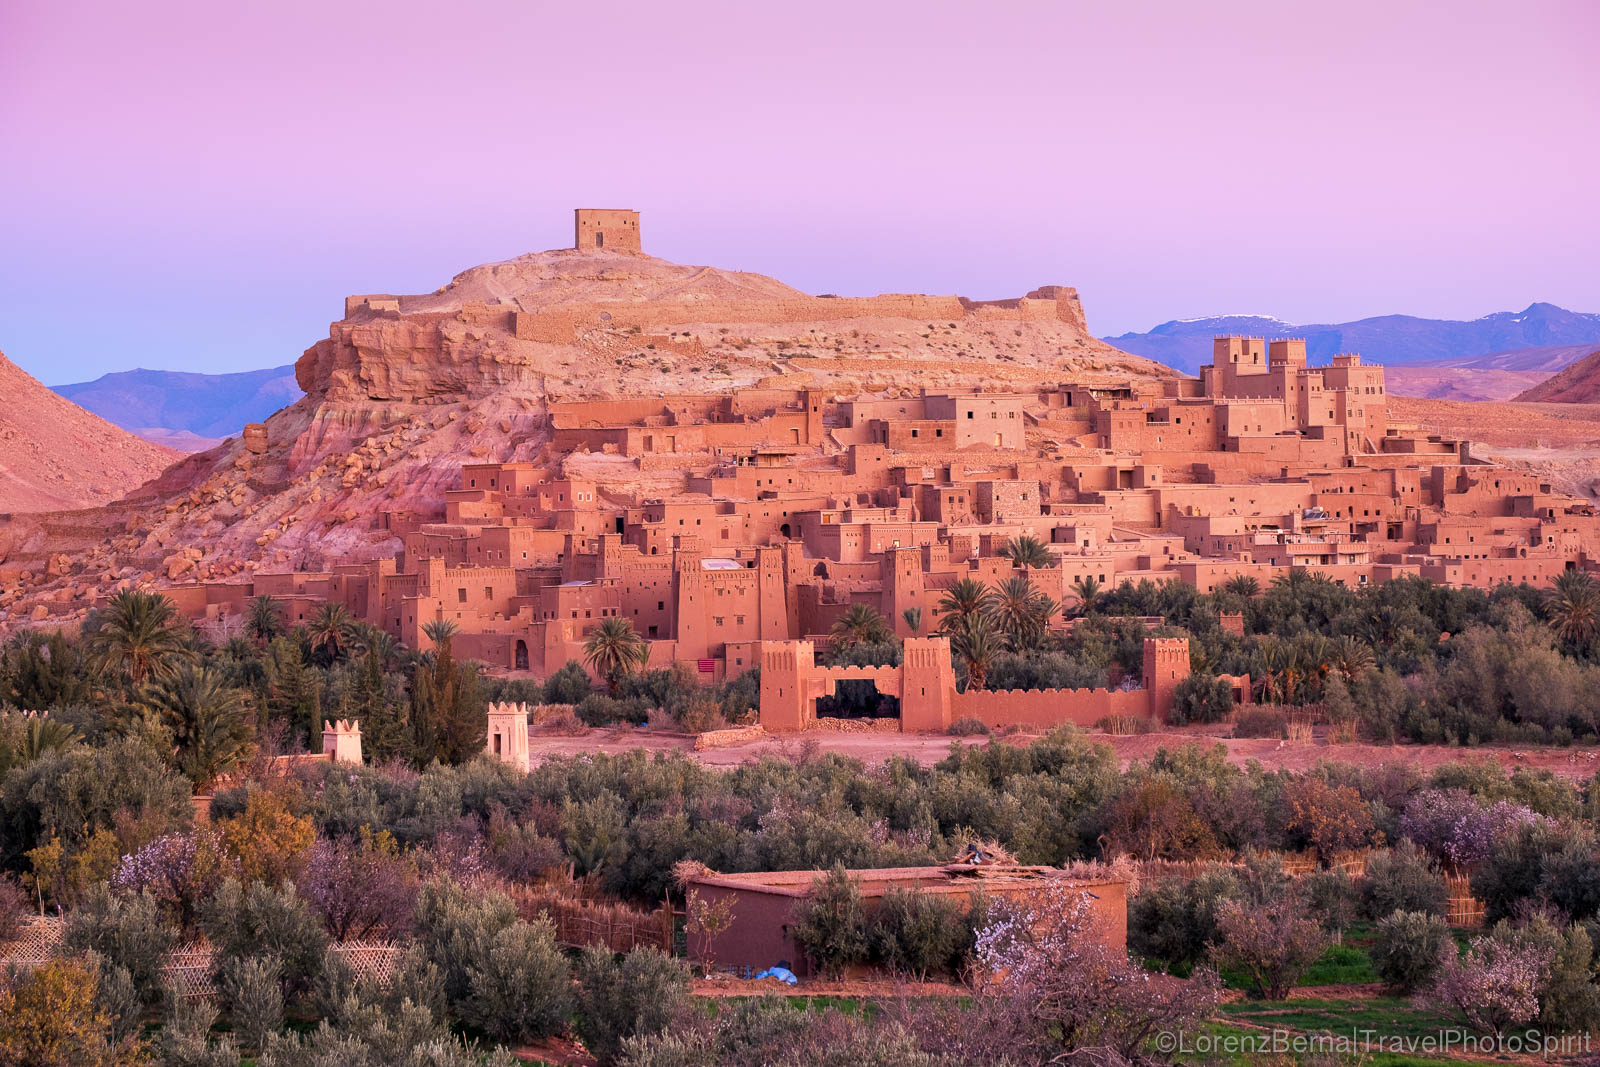 The fortified village of Aït Benhaddou in the High Atlas before sunrise.